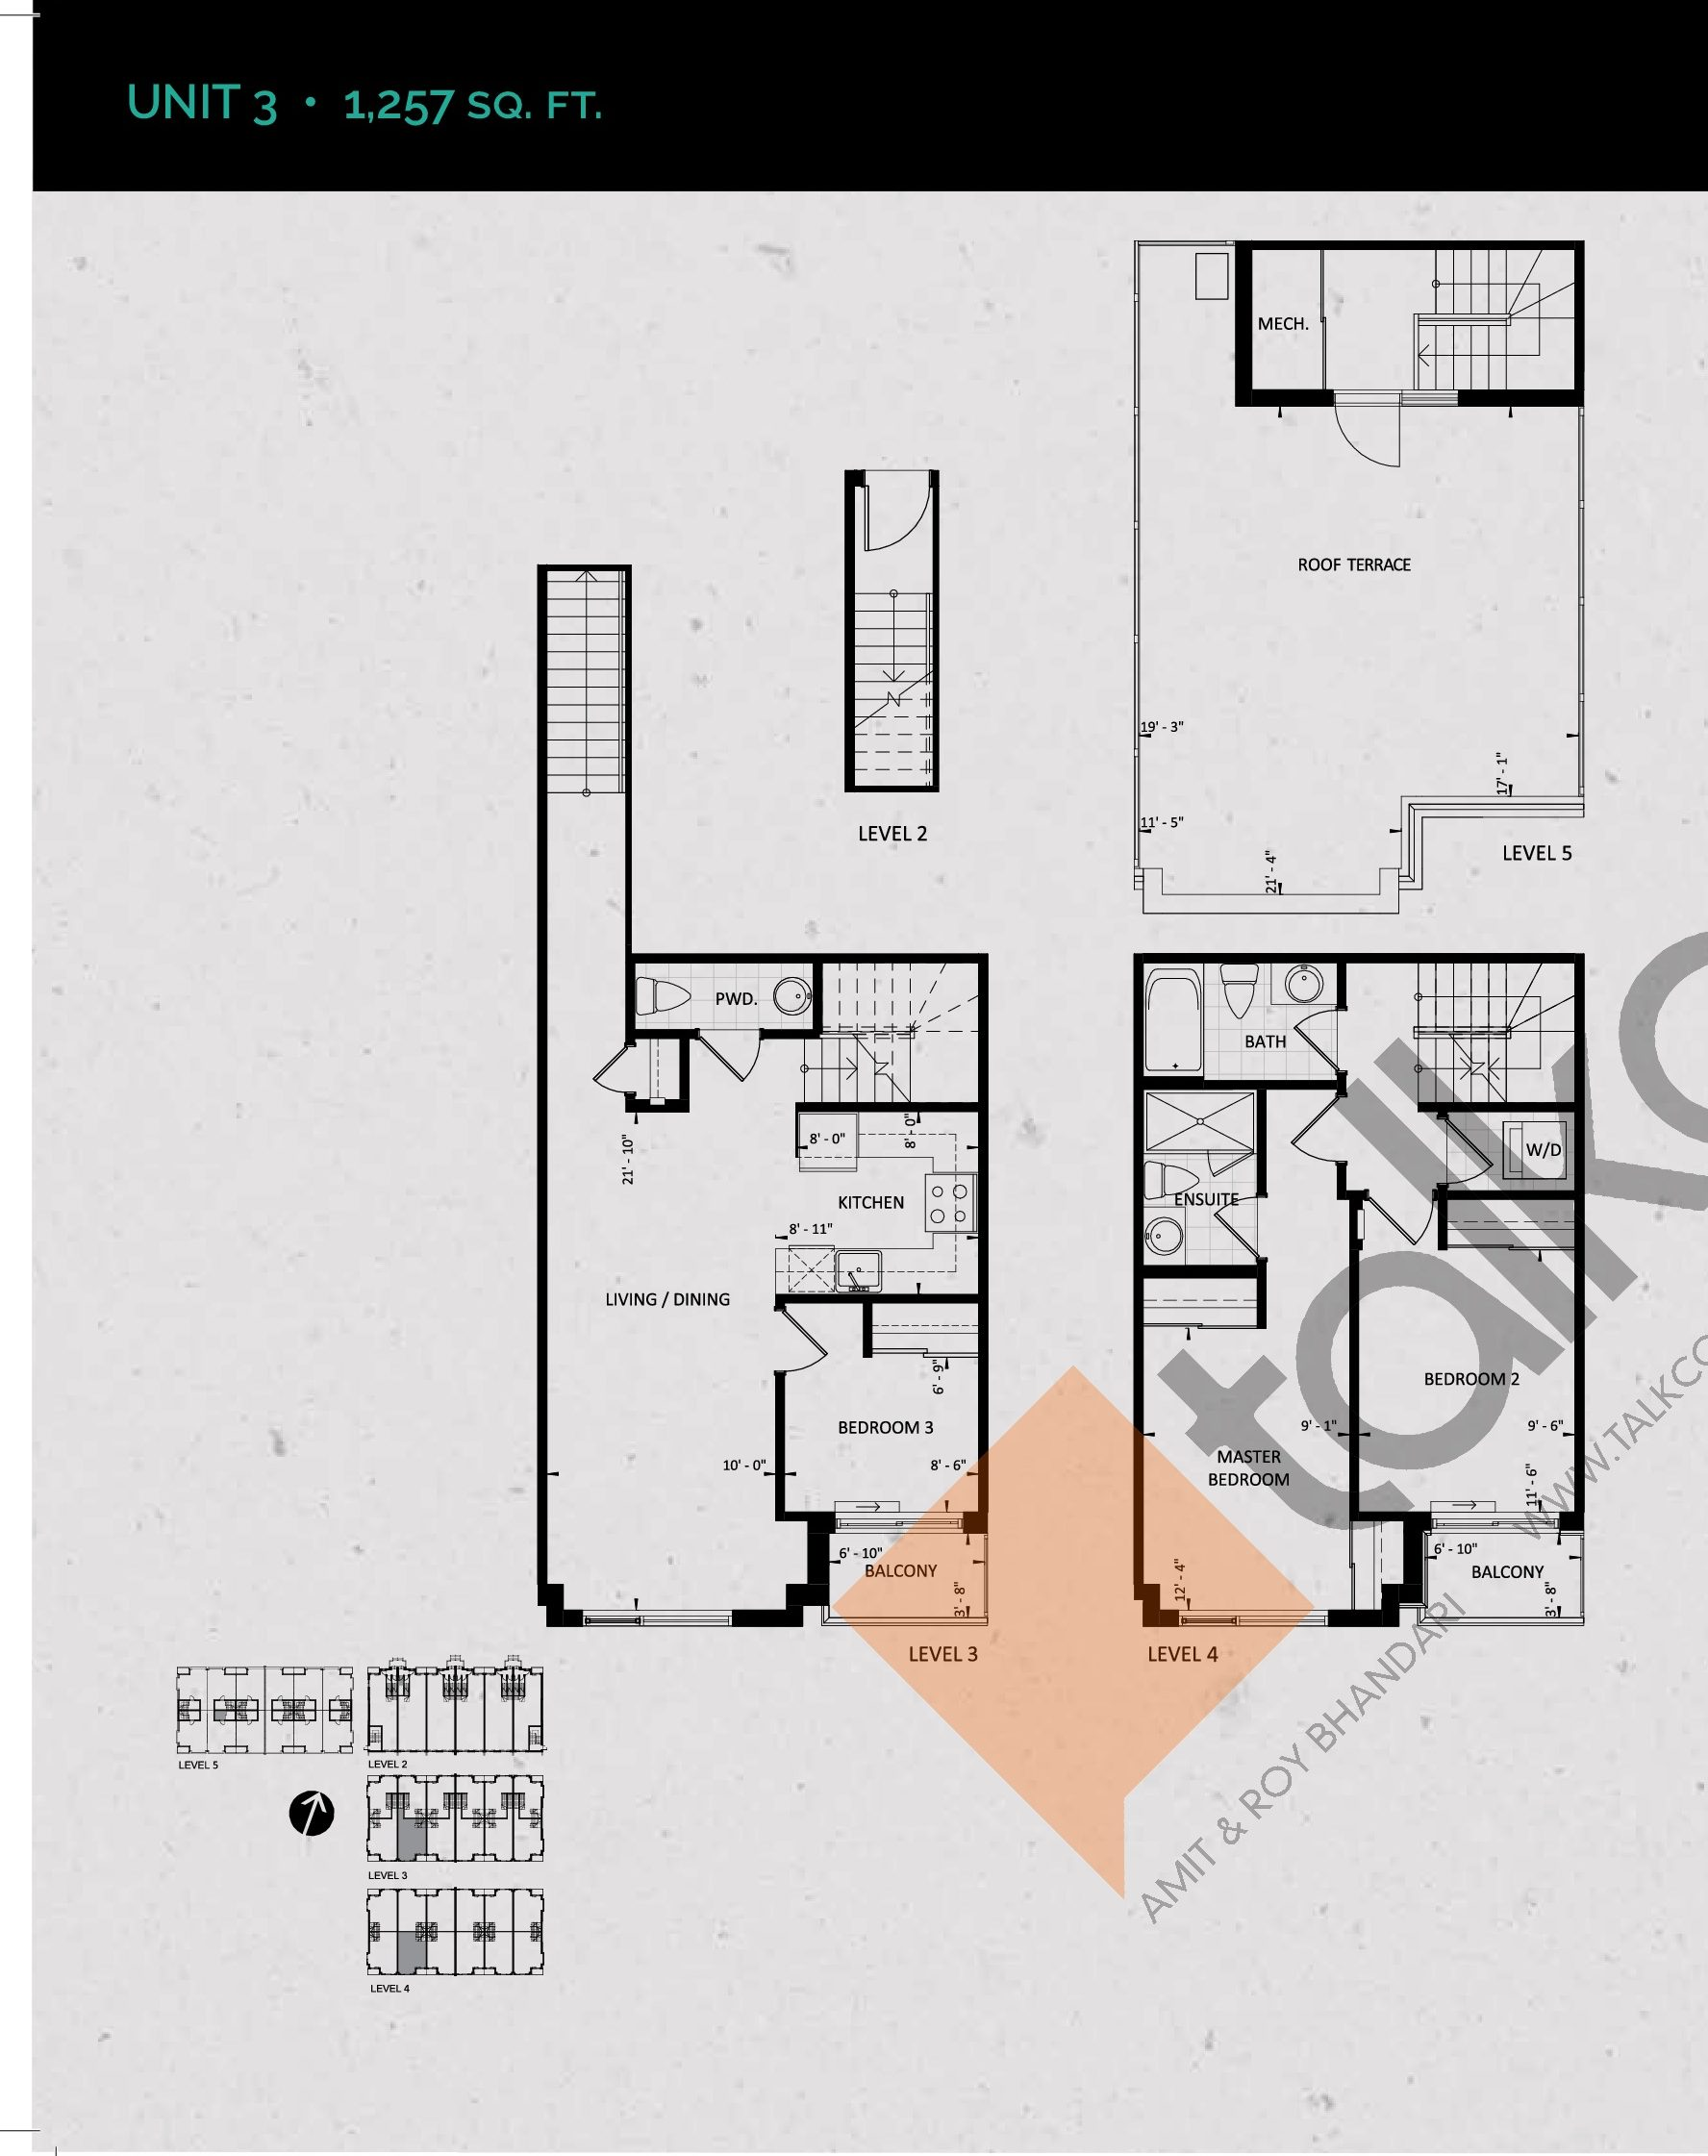 Unit 3 (Terrace Collection) Floor Plan at Towns at Rouge Valley - 1257 sq.ft